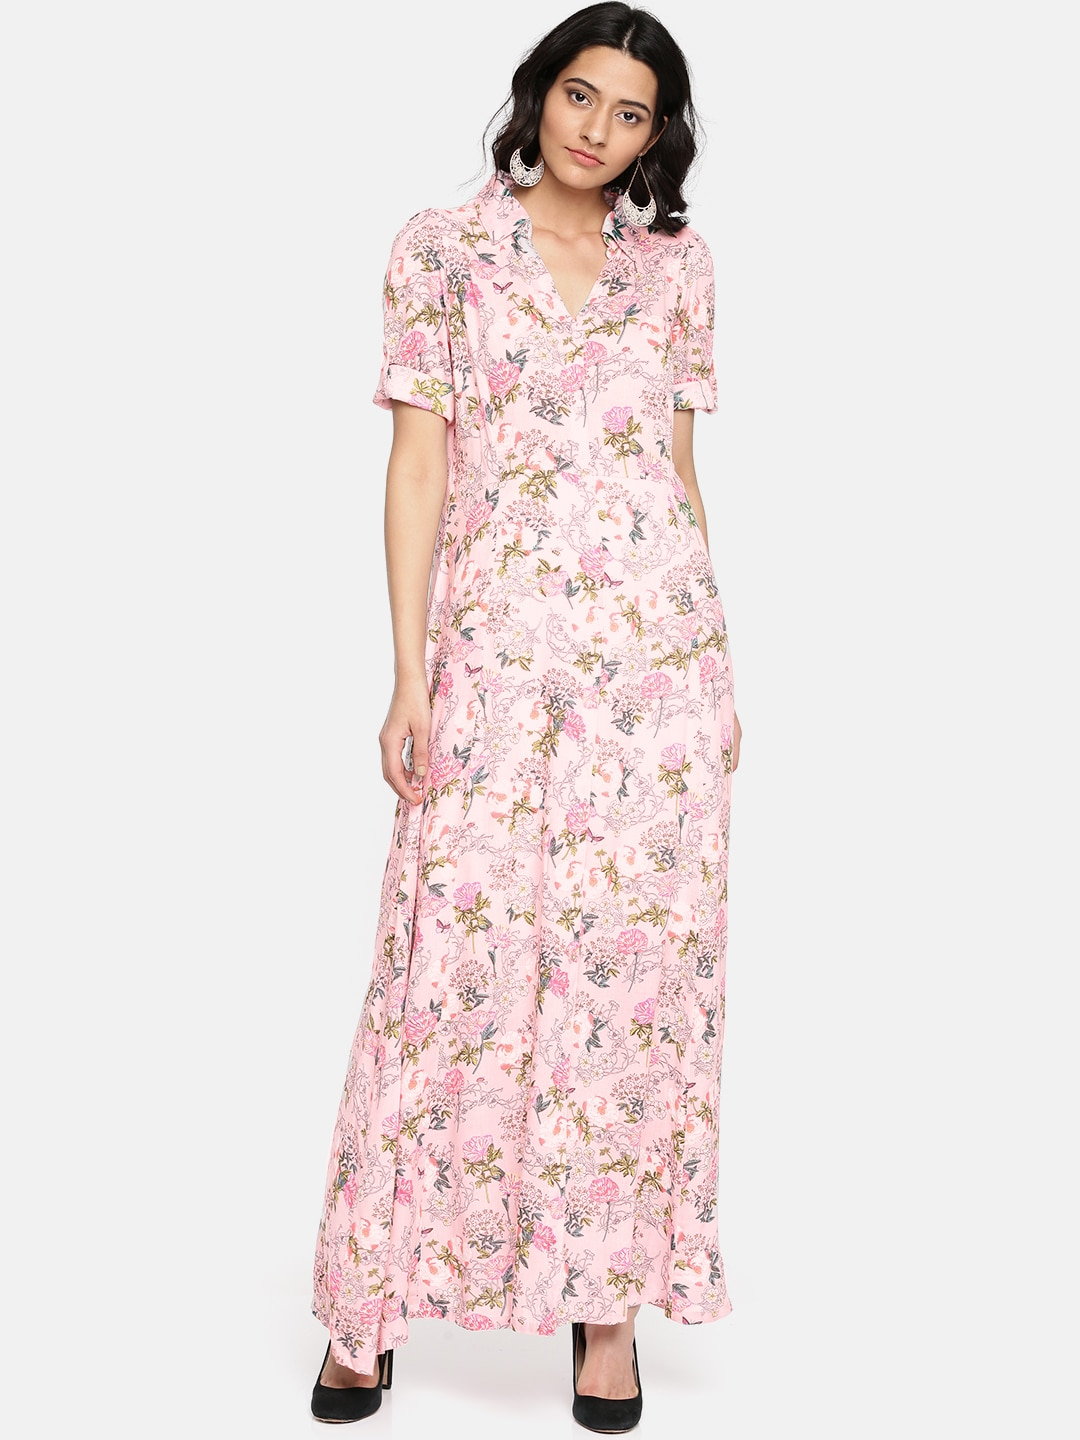 35c4bcf1e12 Long Dresses - Buy Maxi Dresses for Women Online in India - Upto 70% OFF